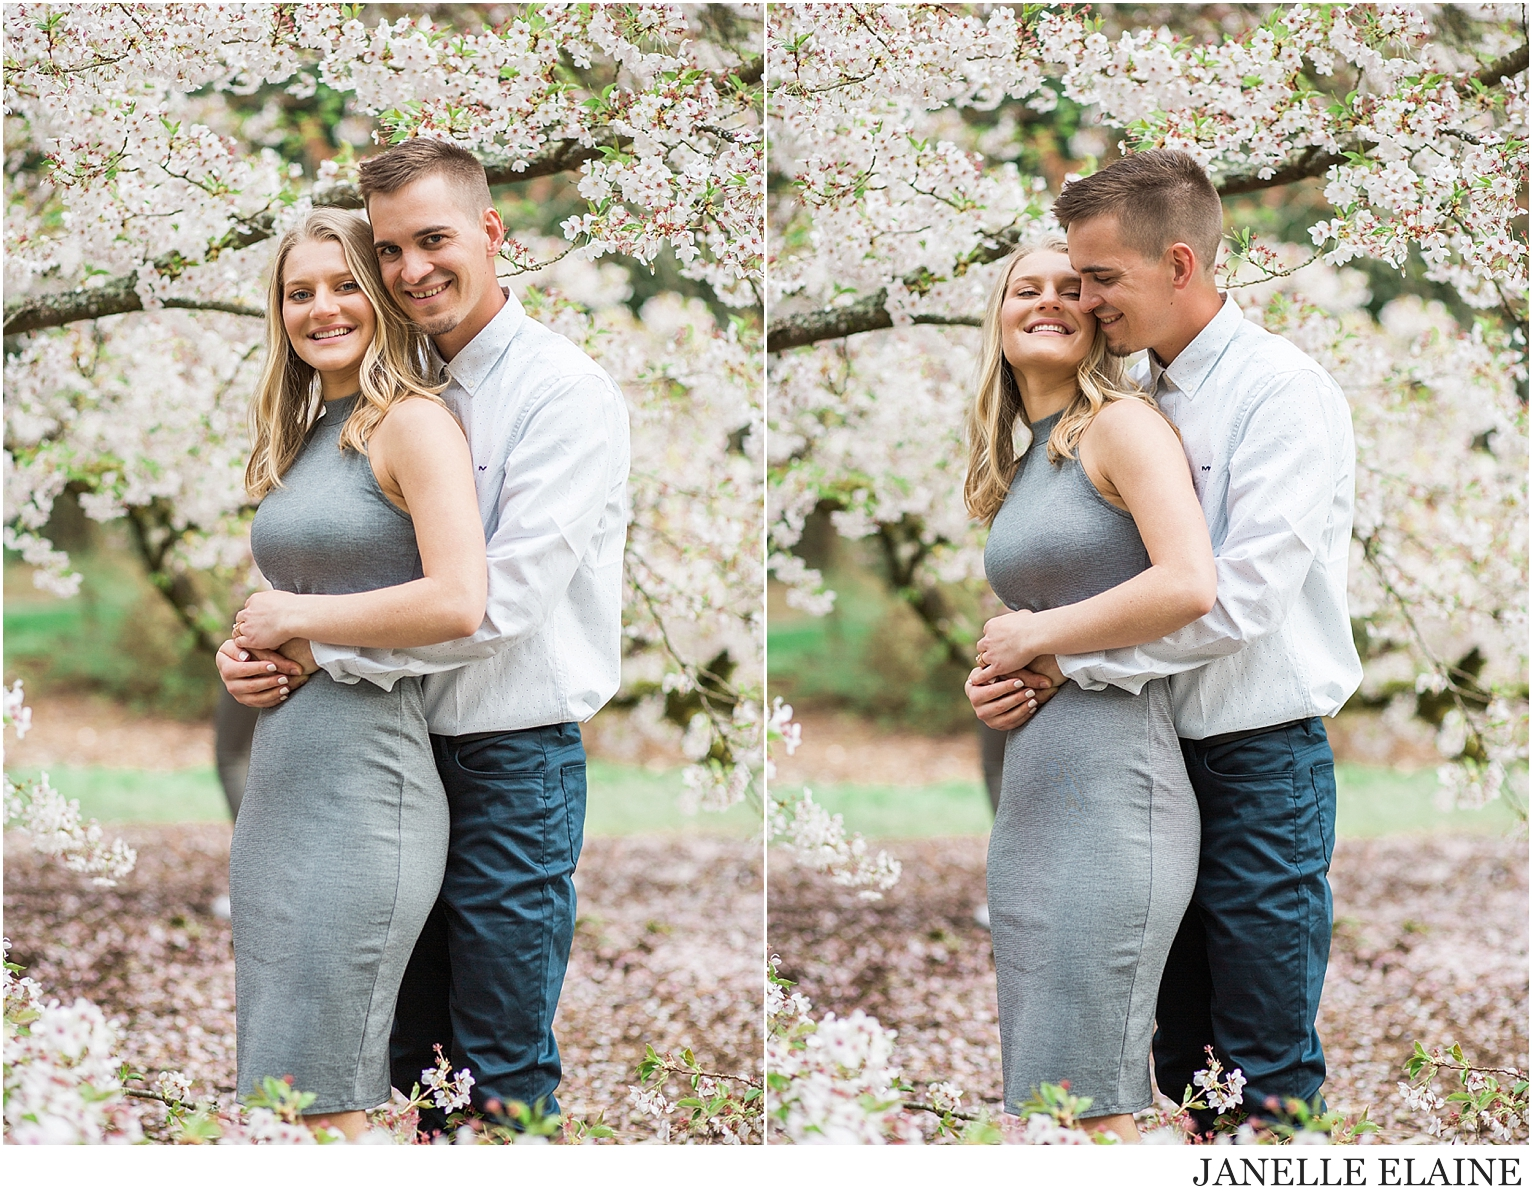 tricia and nate engagement photos-janelle elaine photography-123.jpg